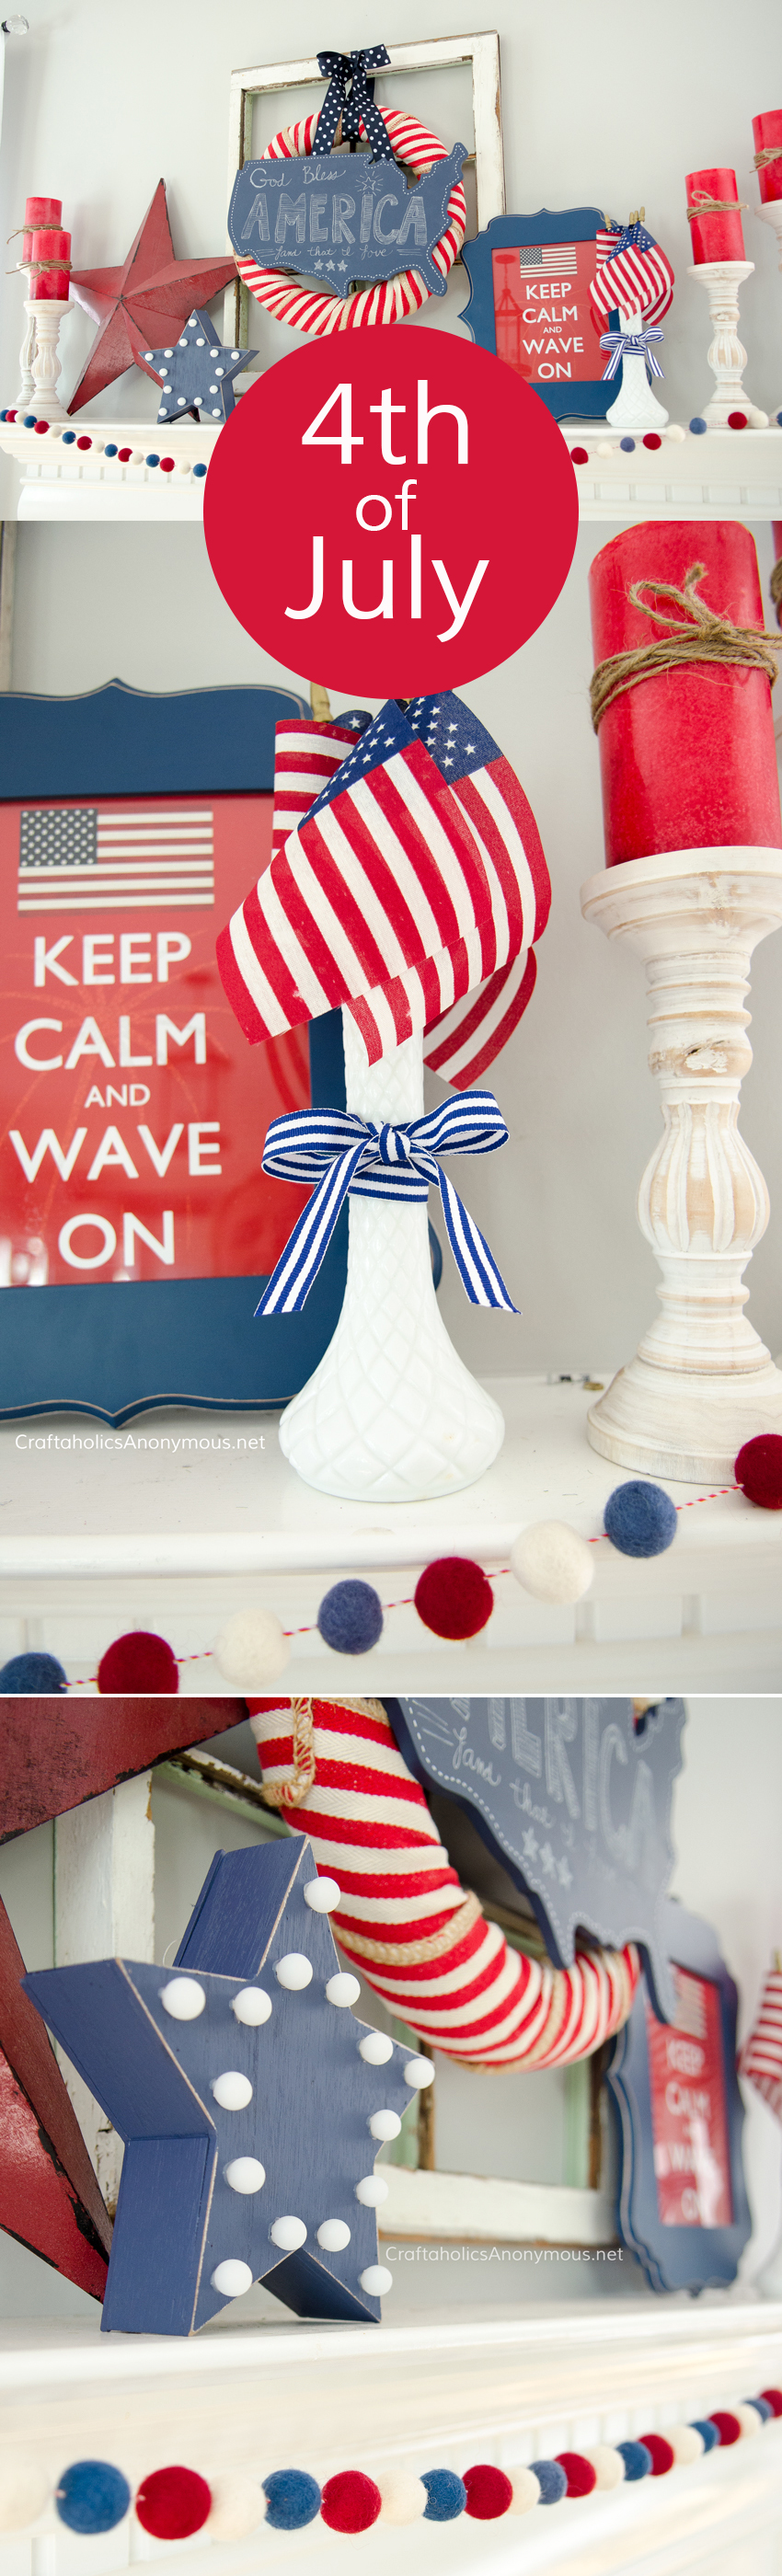 DIY 4th of July Mantle decor